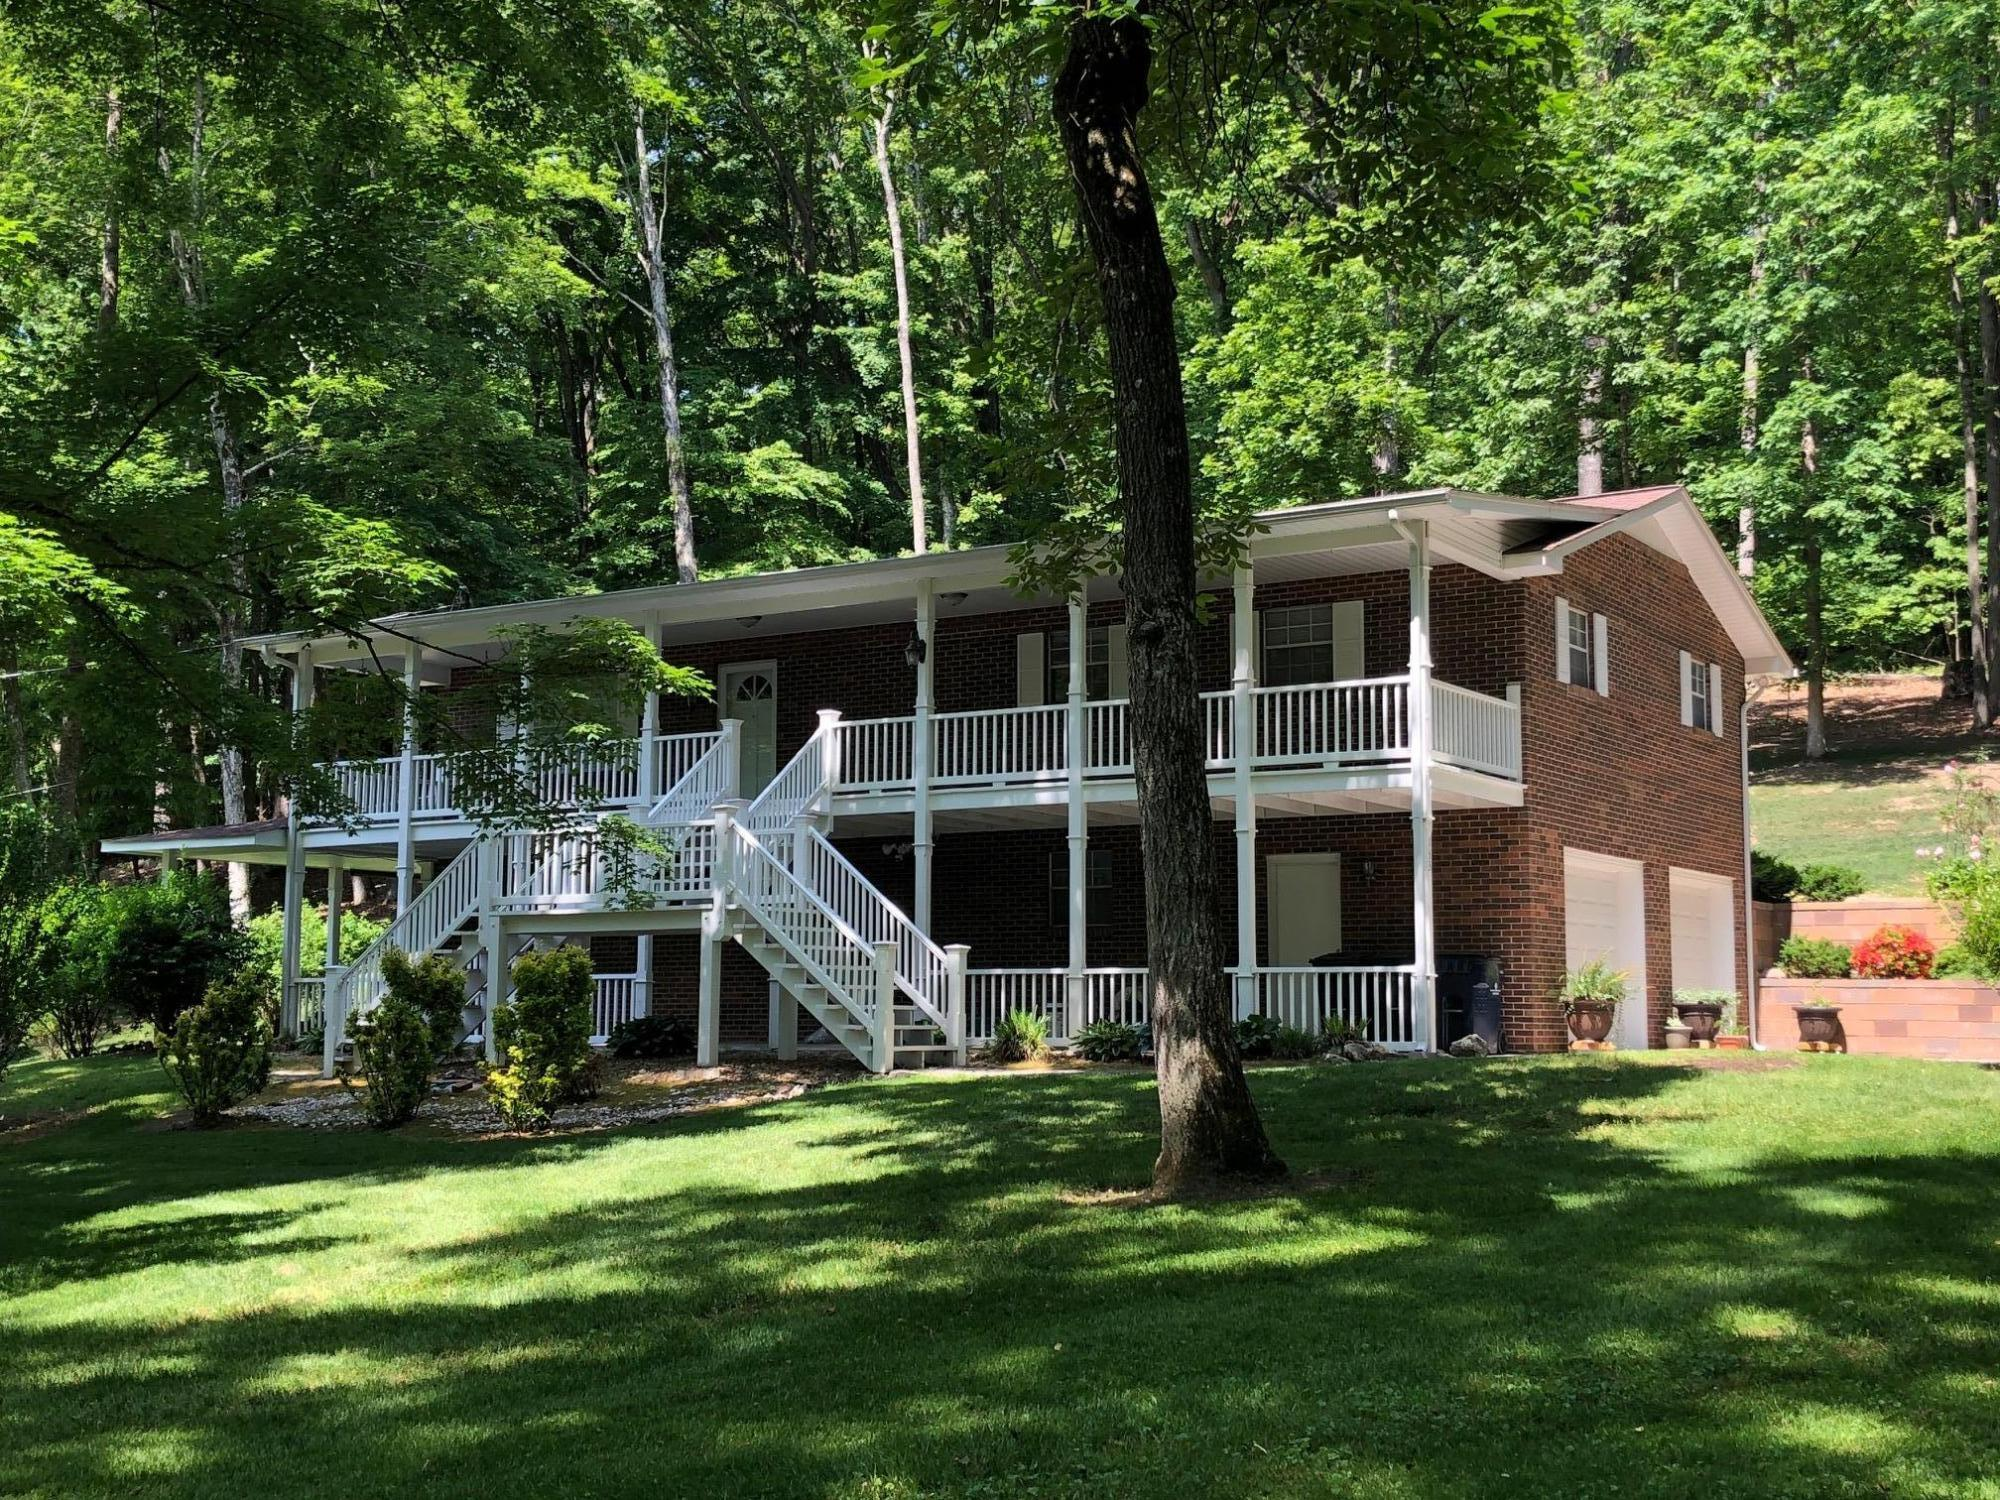 20190612200450343035000000-o Listings anderson county homes for sale